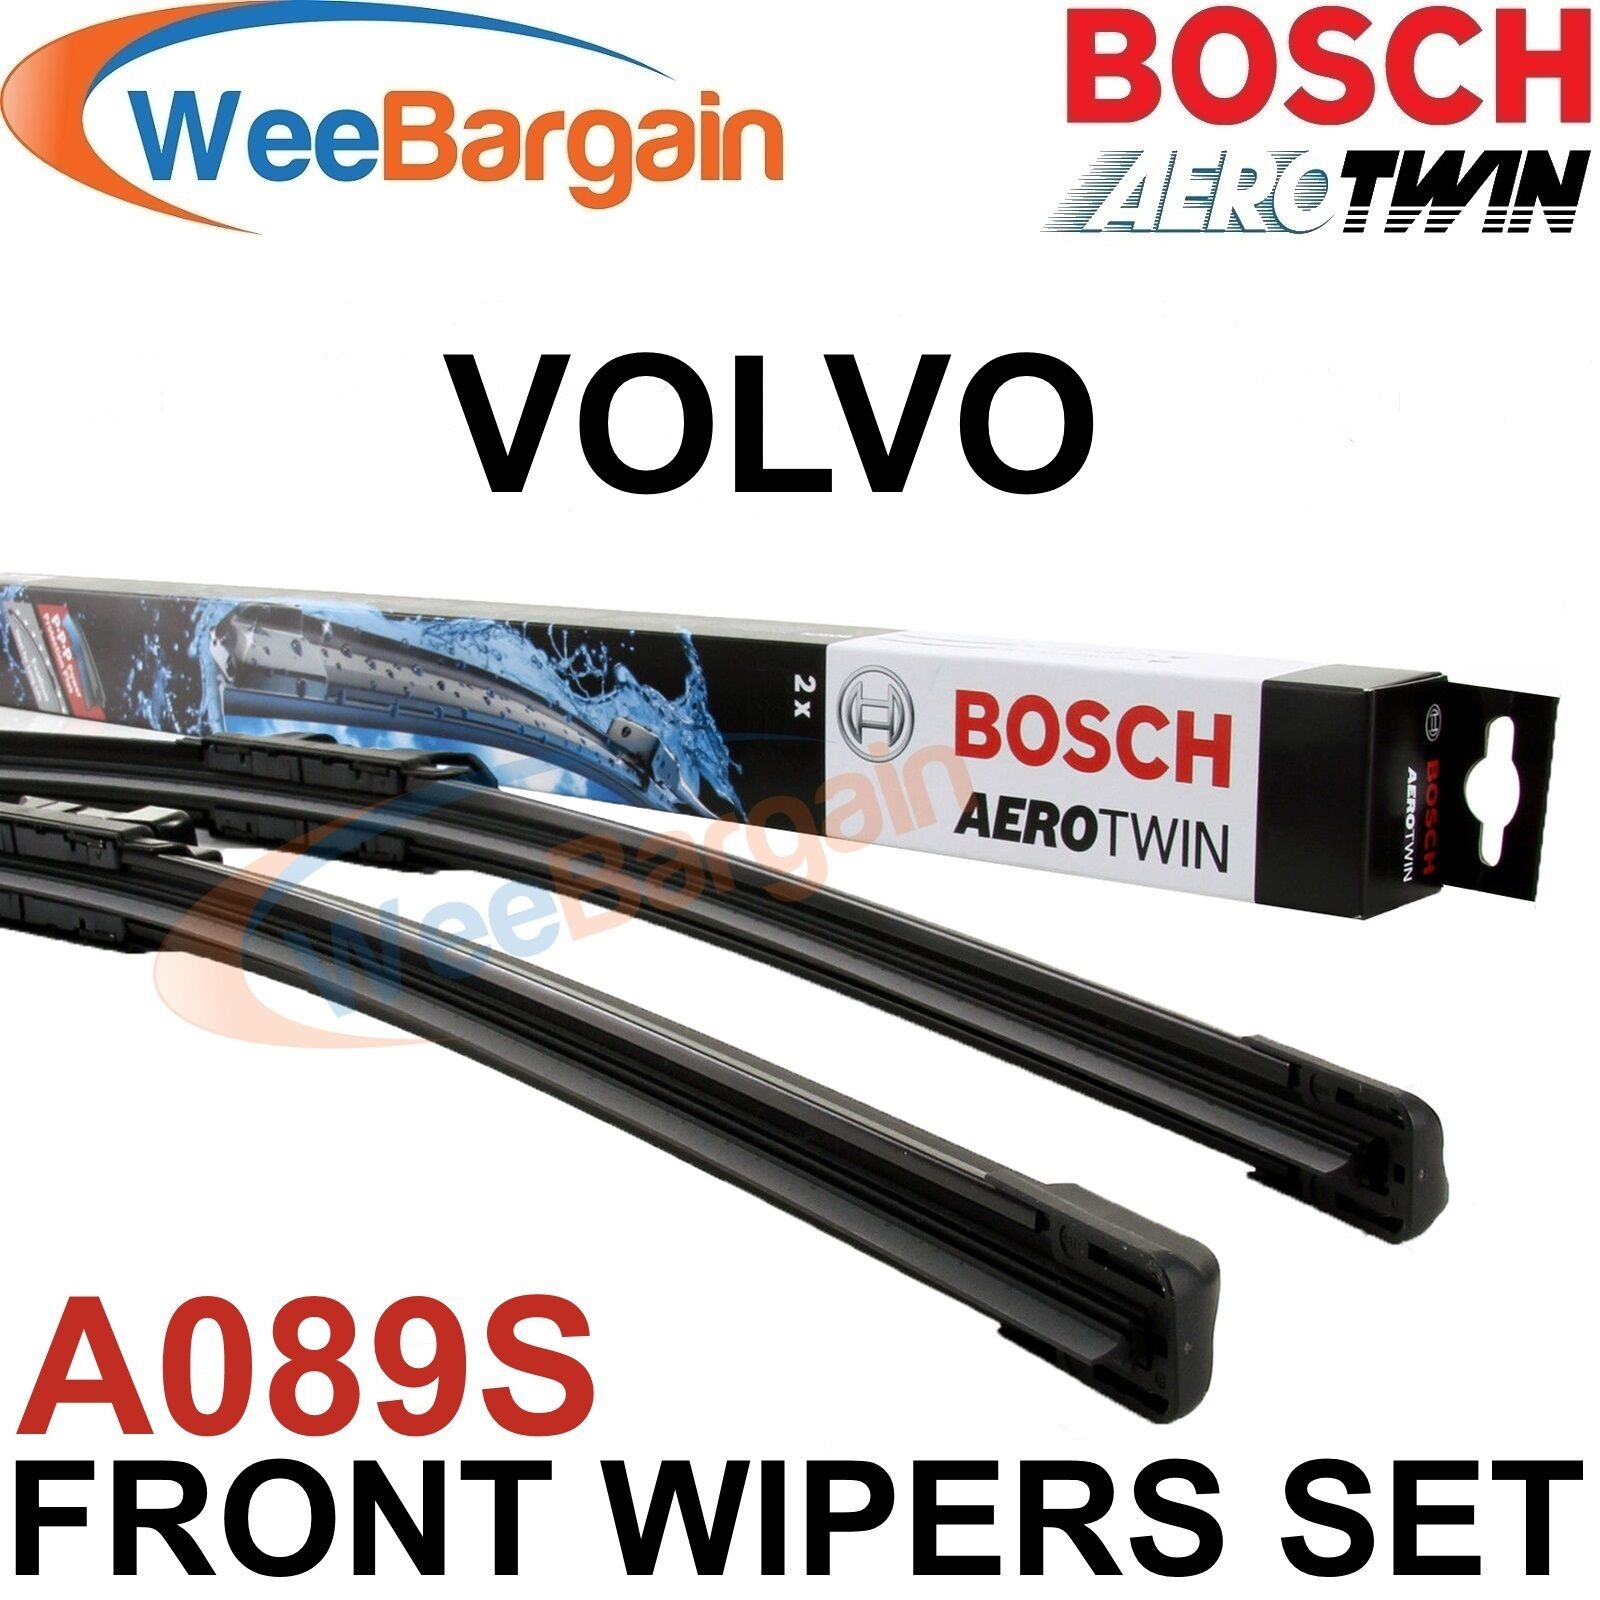 Volvo S60: Wipers and washers